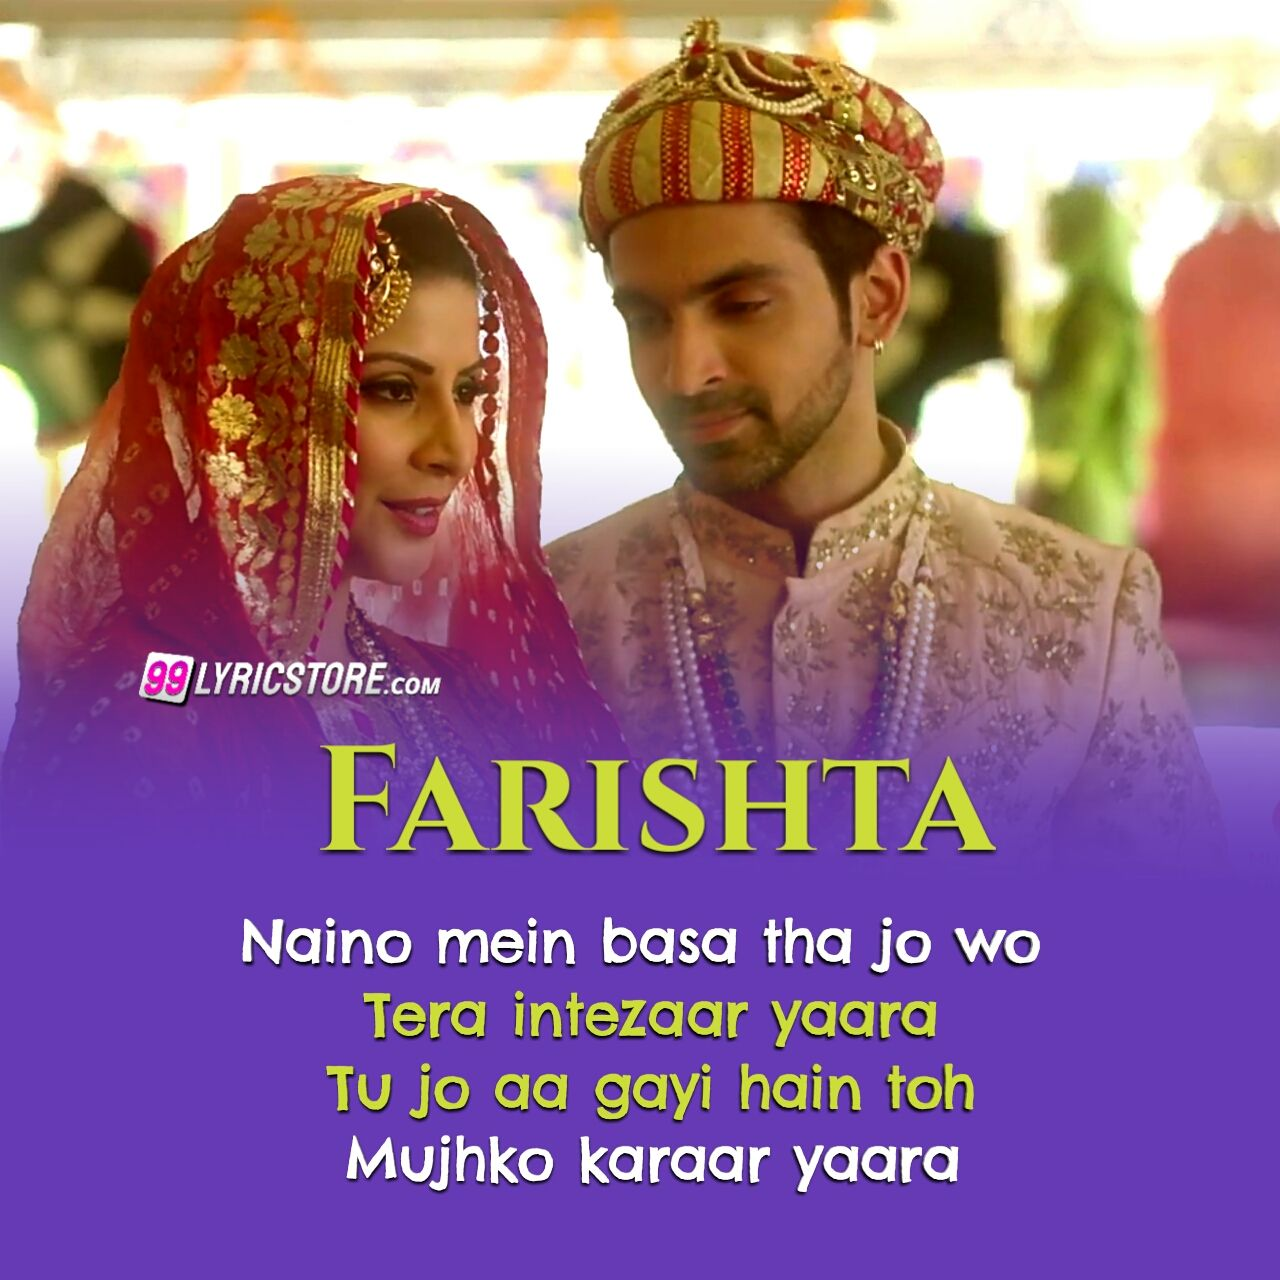 Farishta Hindi love song lyrics sung by Asees Kaur and Arko